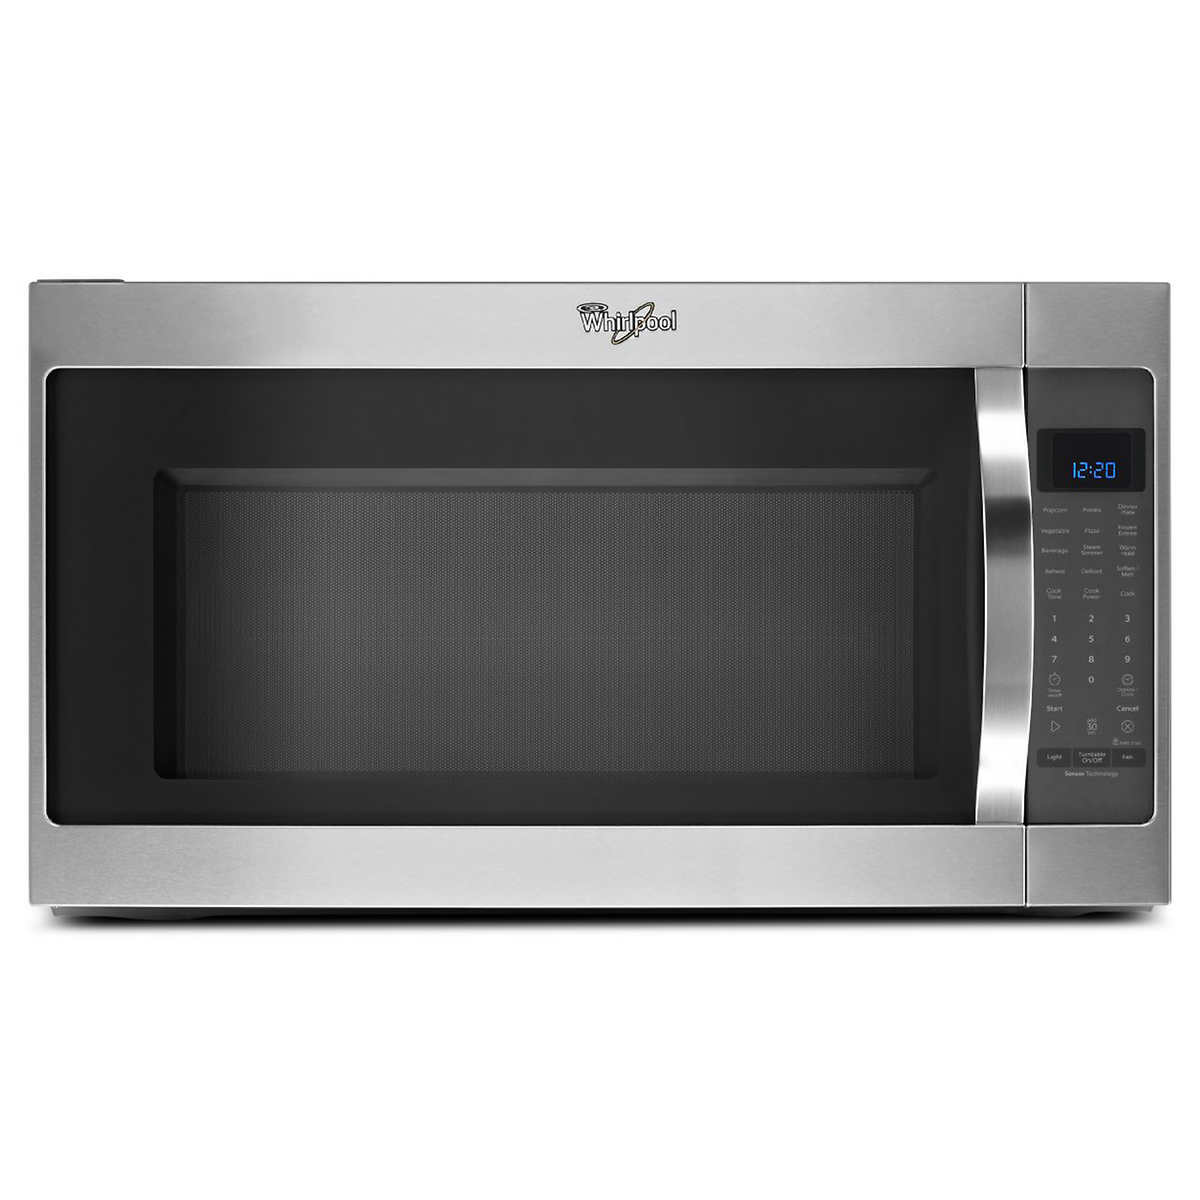 Whirlpool white ice countertop microwave - Whirlpool 2 0cuft Stainless Steel Over The Range Microwave With Cleanrelease Non Stick